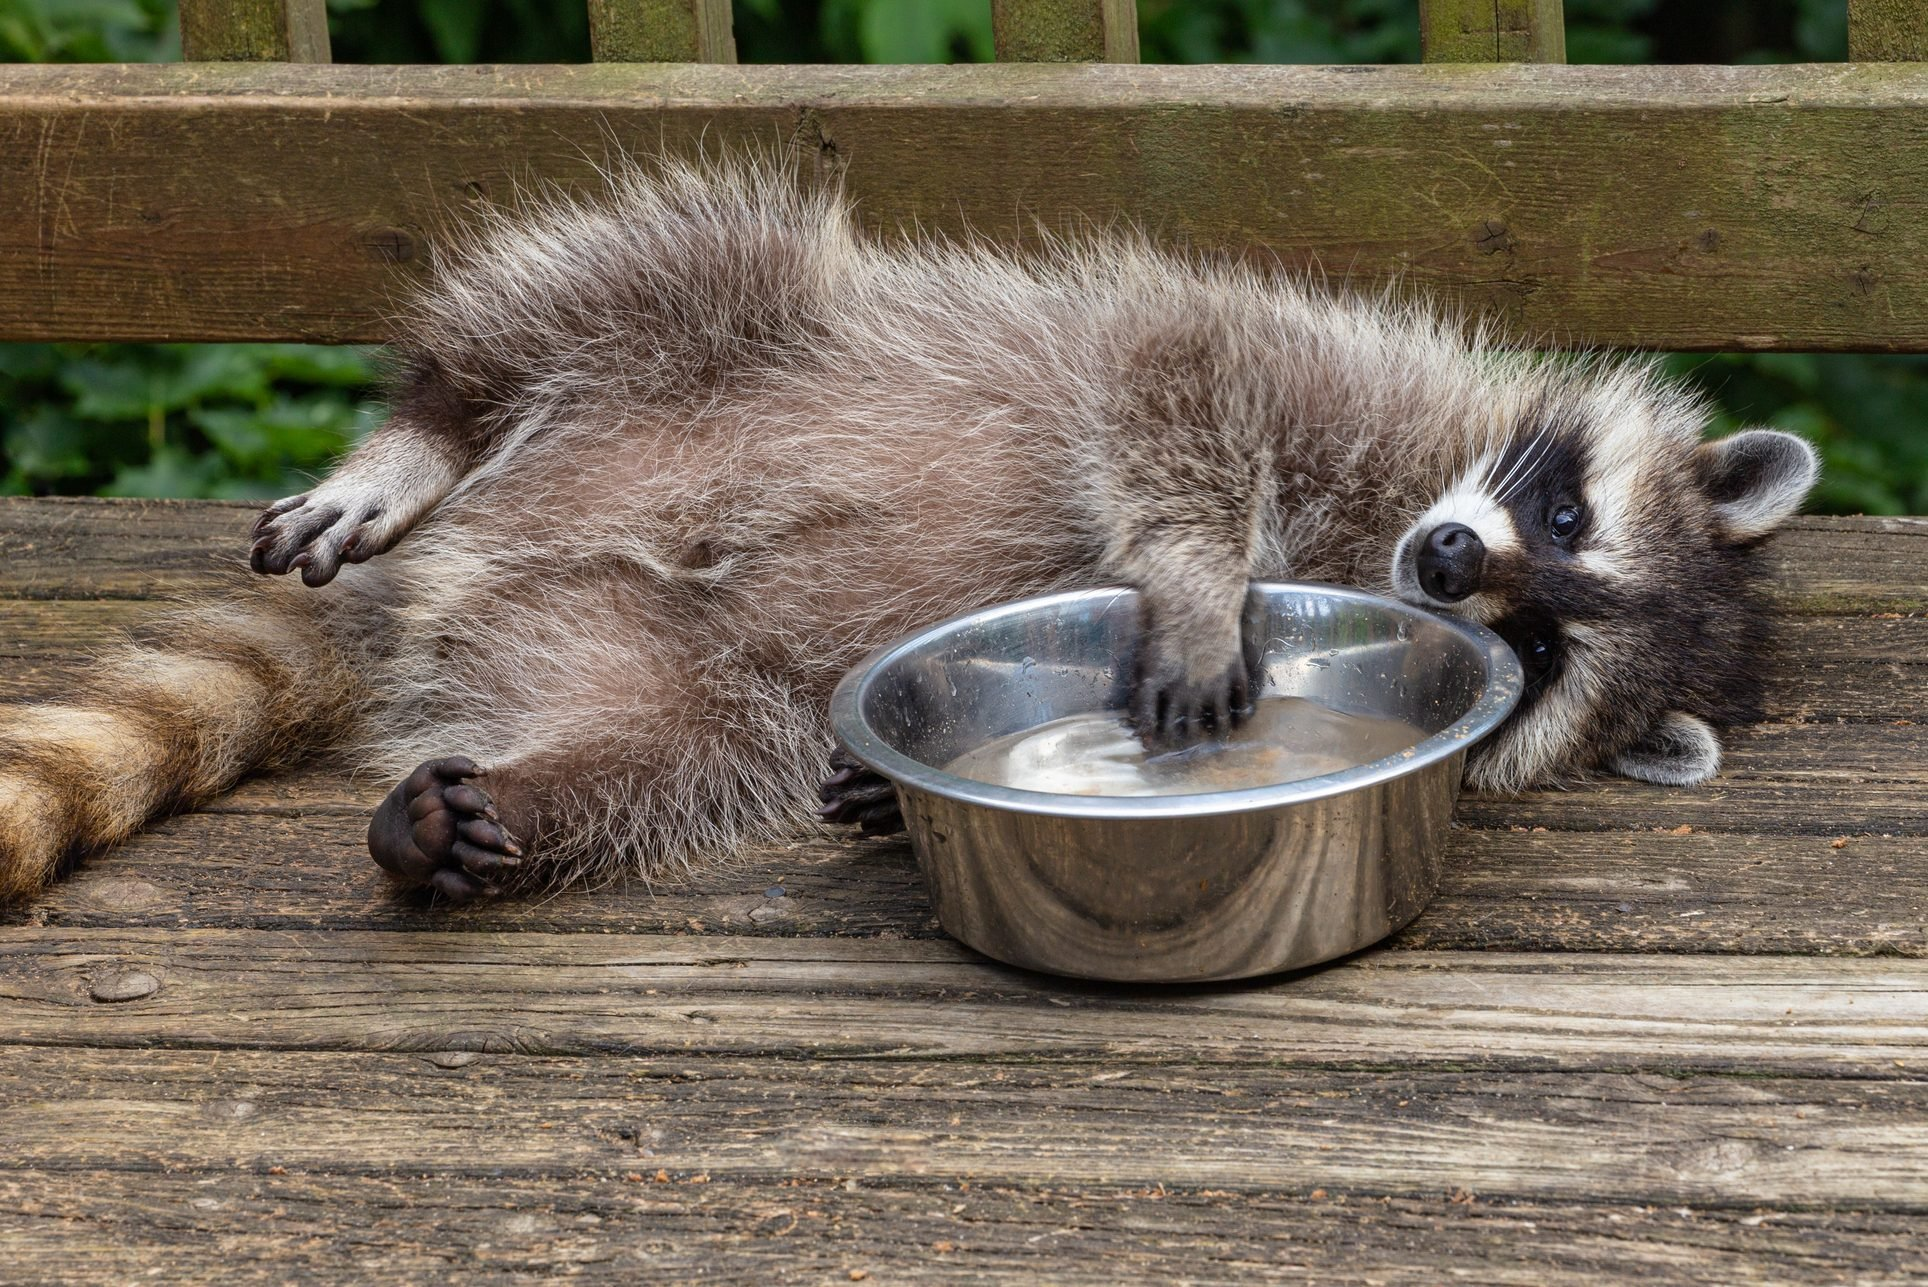 View Of A Baby Raccoon Playing With Water Bowl On A Wooden Deck.